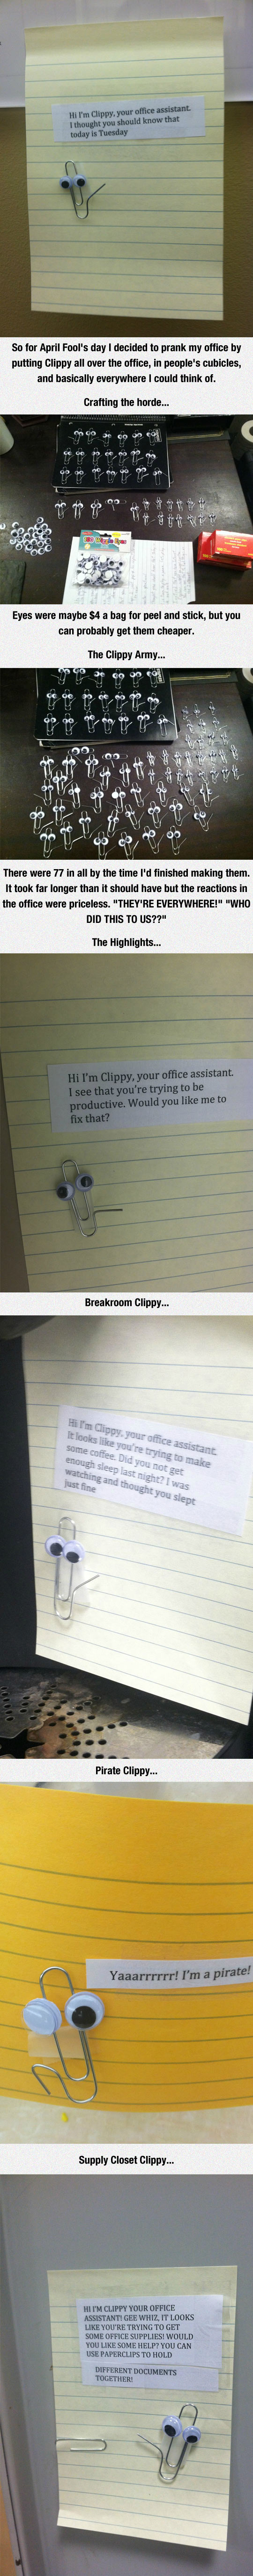 Suddenly, A Wild Clippy Appears